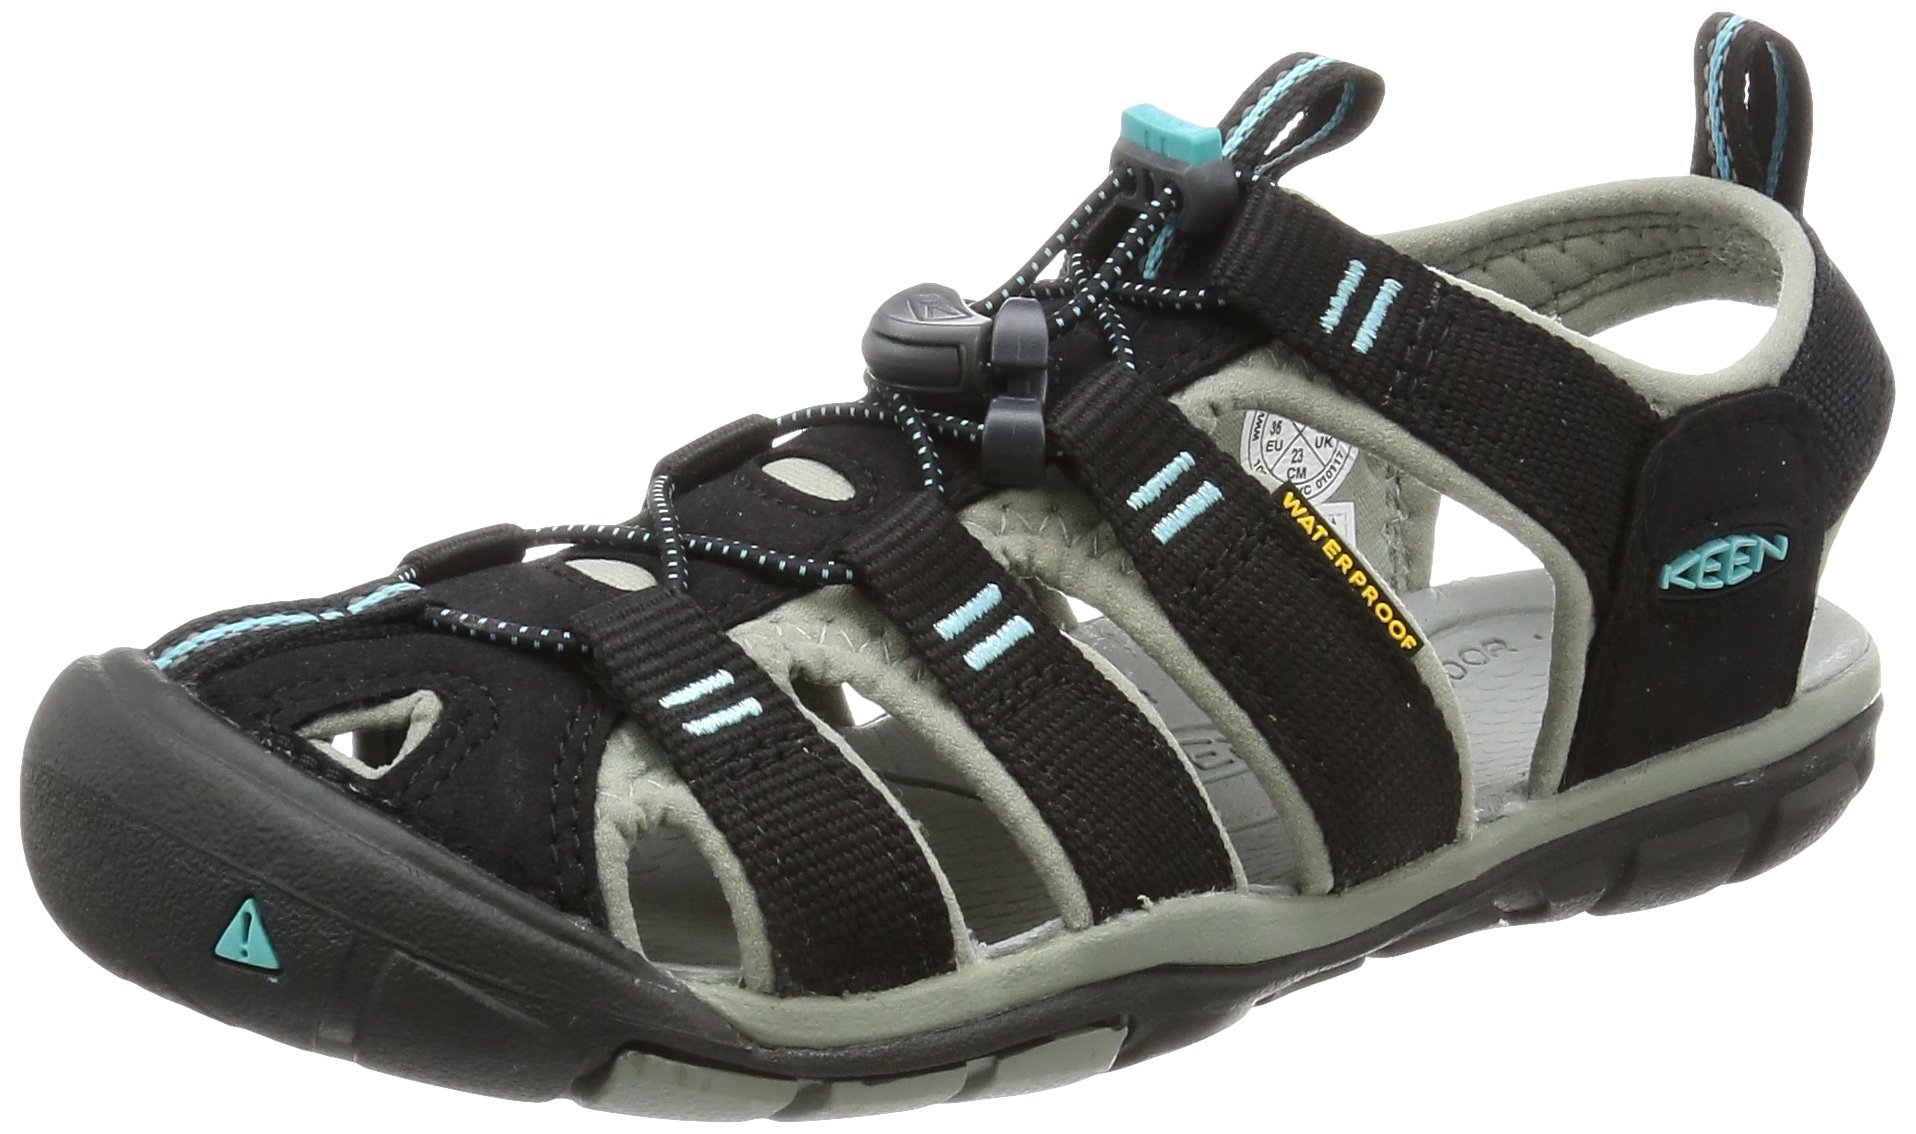 KEEN Women's Clearwater CNX Sandal, Black/Radiance, 10.5 M US